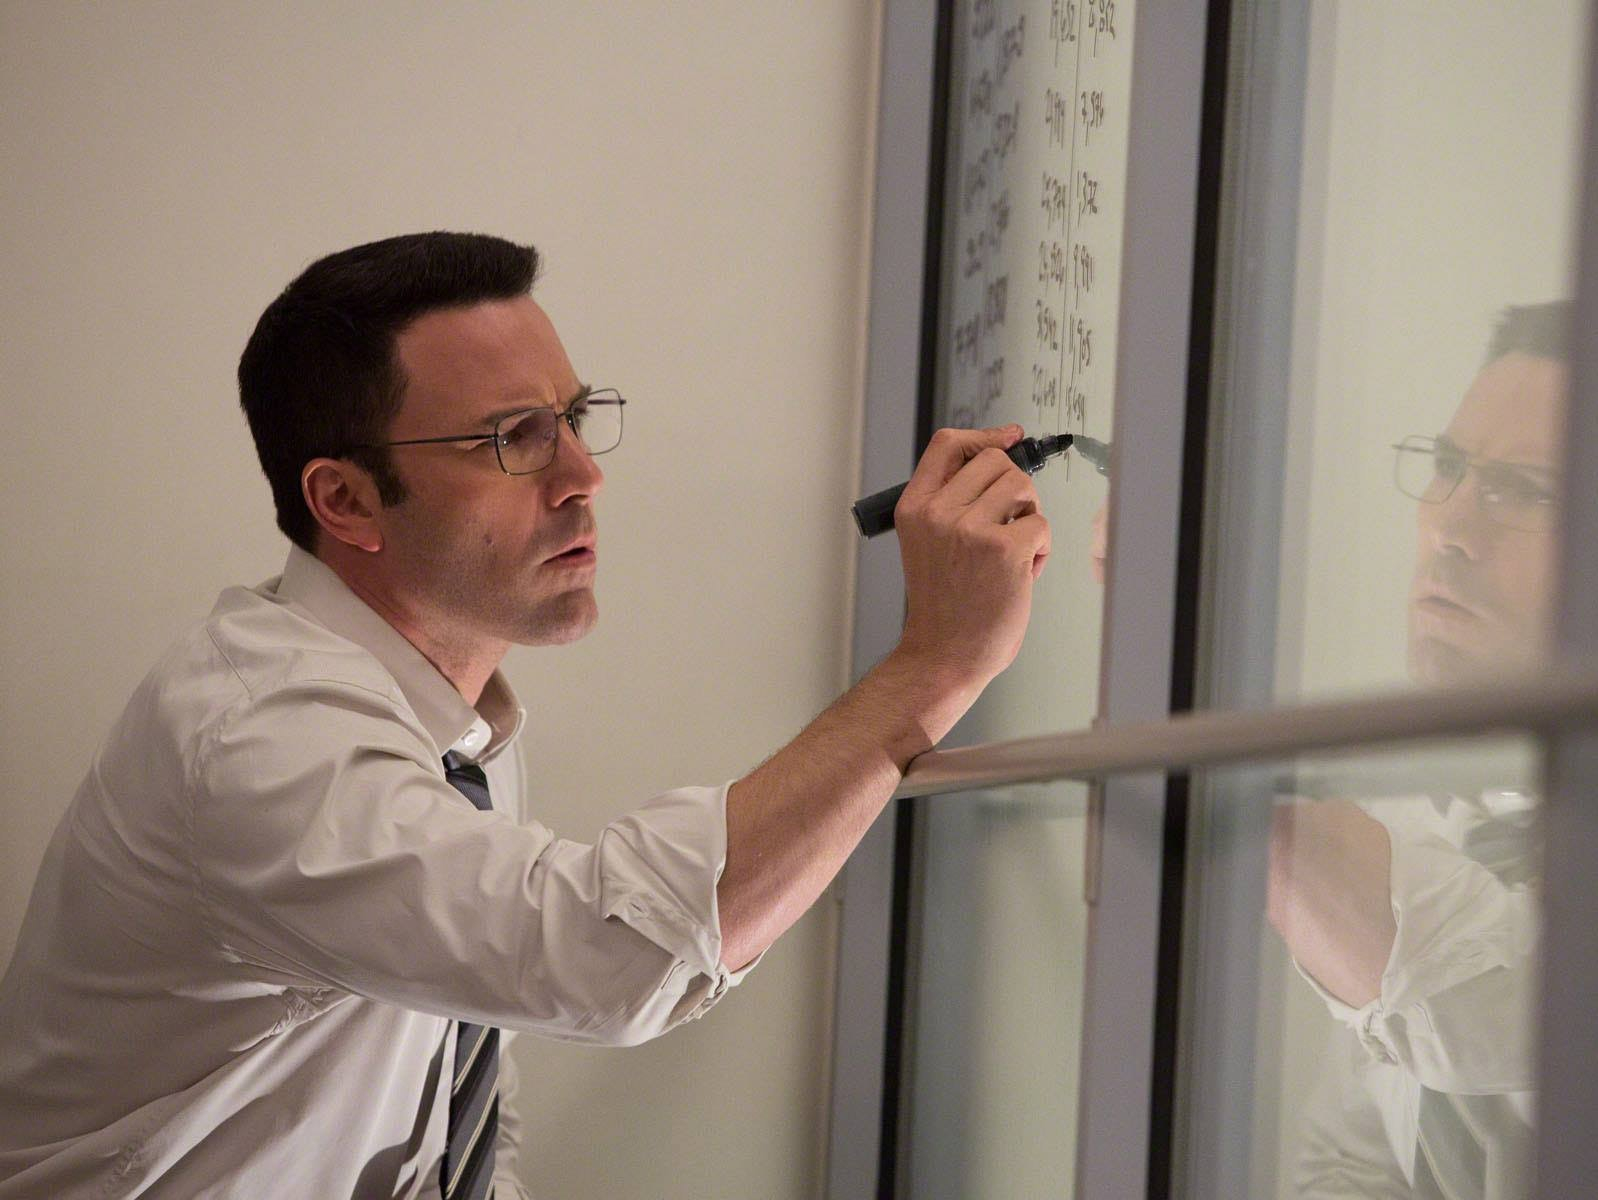 Autism Turns You Into a Superhero in the Patently Absurd 'The Accountant'